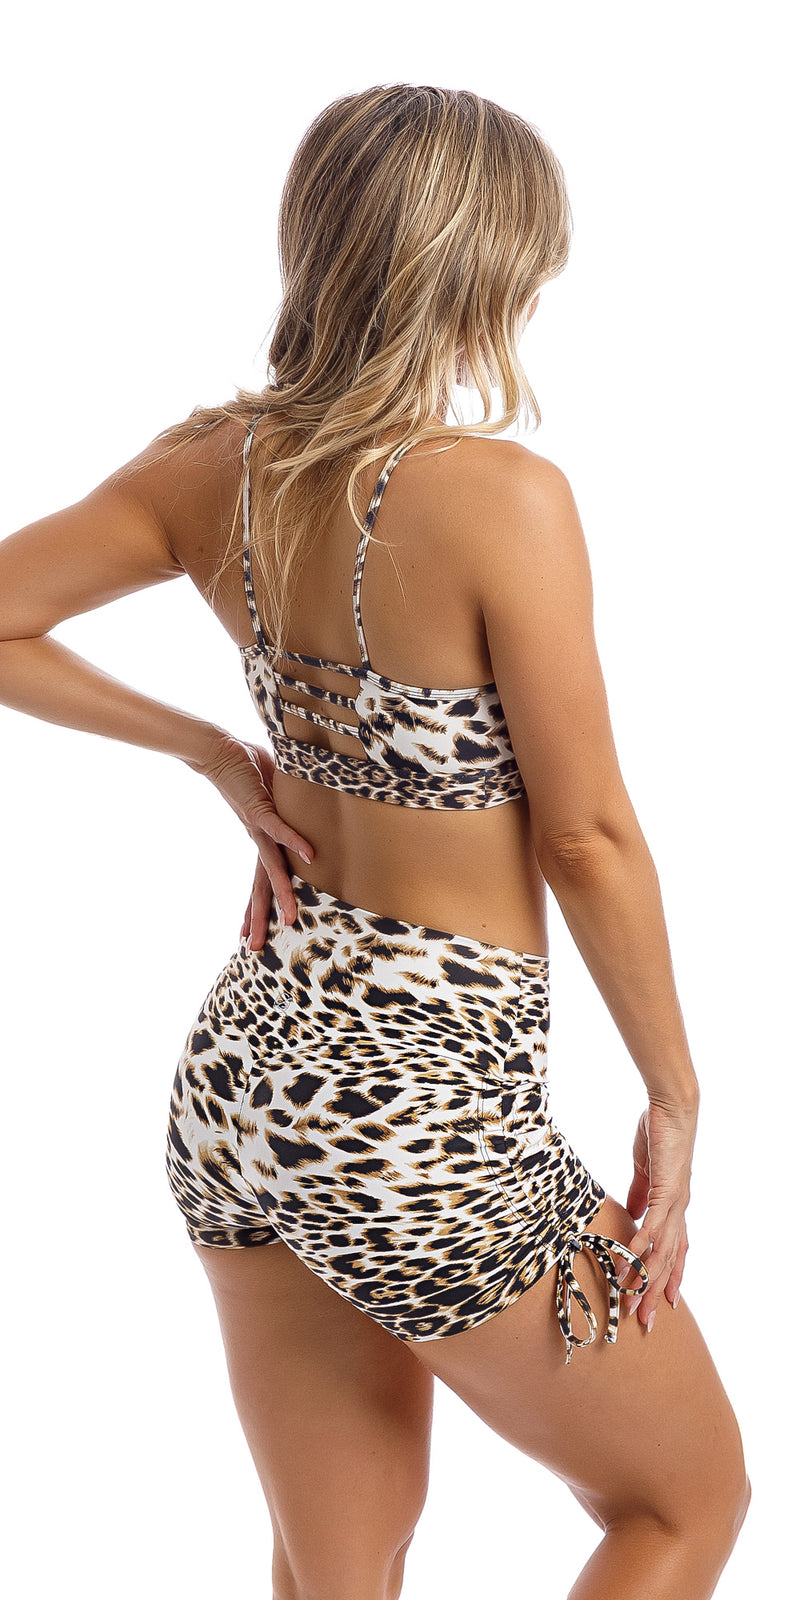 Girl with hand on hip wearing brown & white cheetah print bootie shorts & matching momentum bra